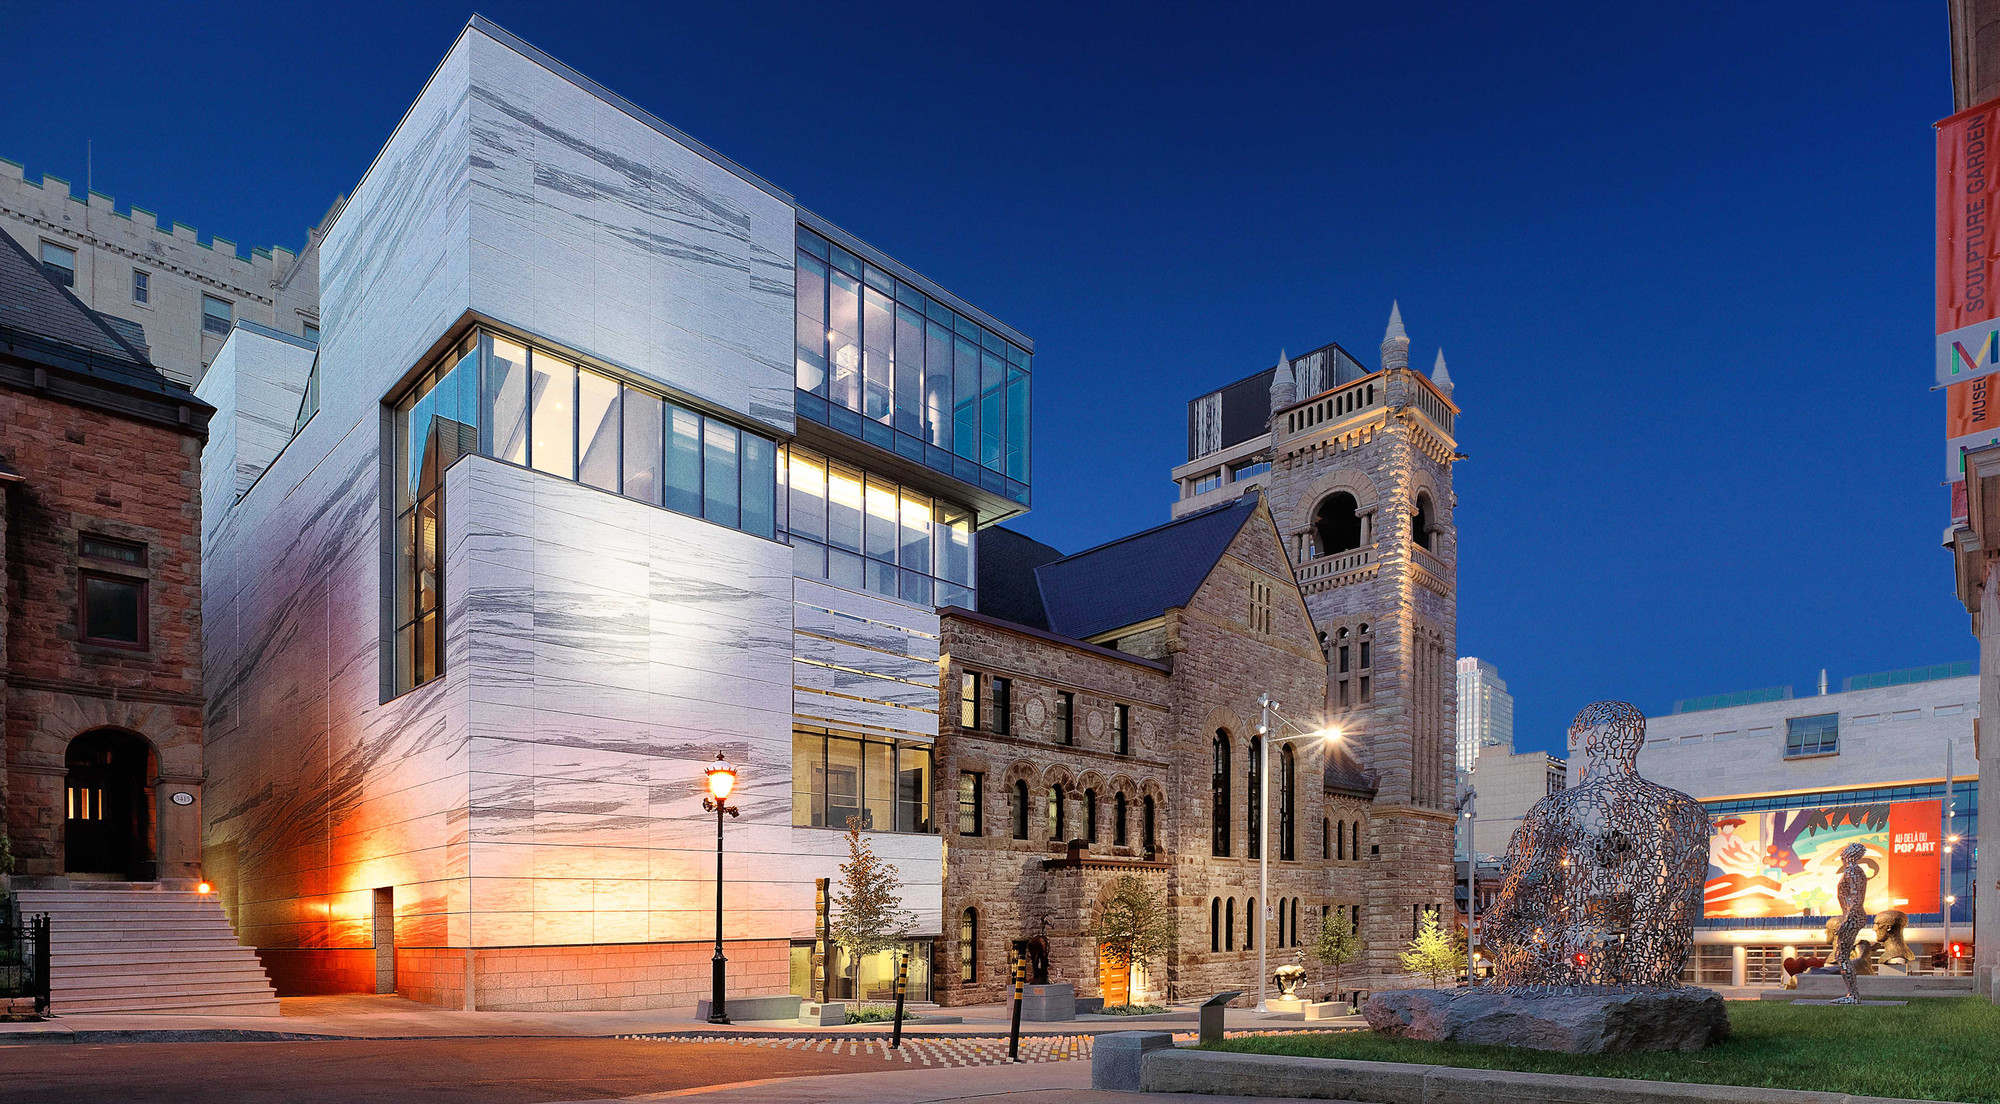 Provencher_Roy Wins RAIC's 2015 Architectural Firm Award, Claire and Marc Bourgie Pavillon of Quebec and Canadian Art at the Montreal Museum of Fine Arts - 2011; Montreal, Canada. ImageMarc Cramer